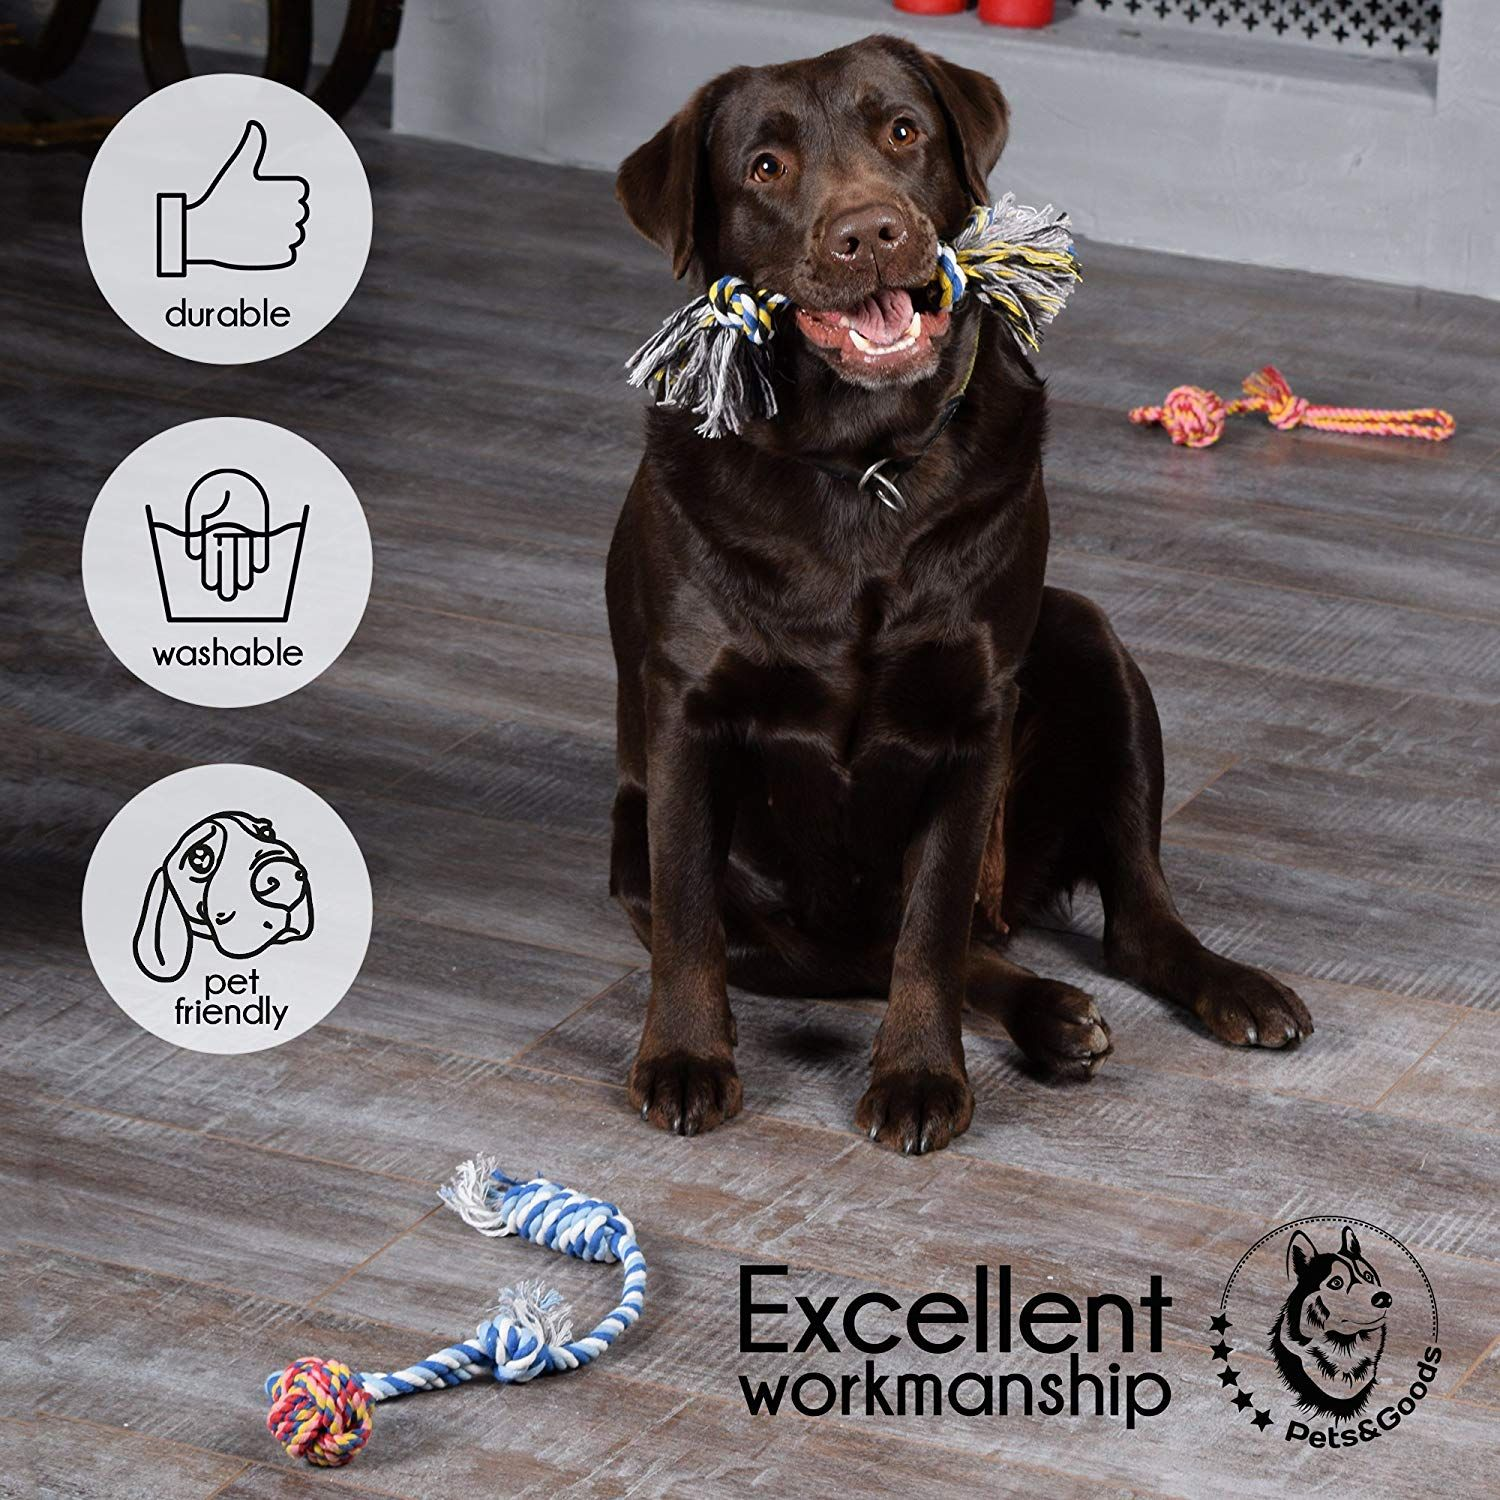 Dog Toys Dog Chew Toys Puppy Teething Toys Puppy Chew Toys Rope Dog Toy Click Image To Review More Details Rope Dog Toys Puppy Teething Toy Puppies